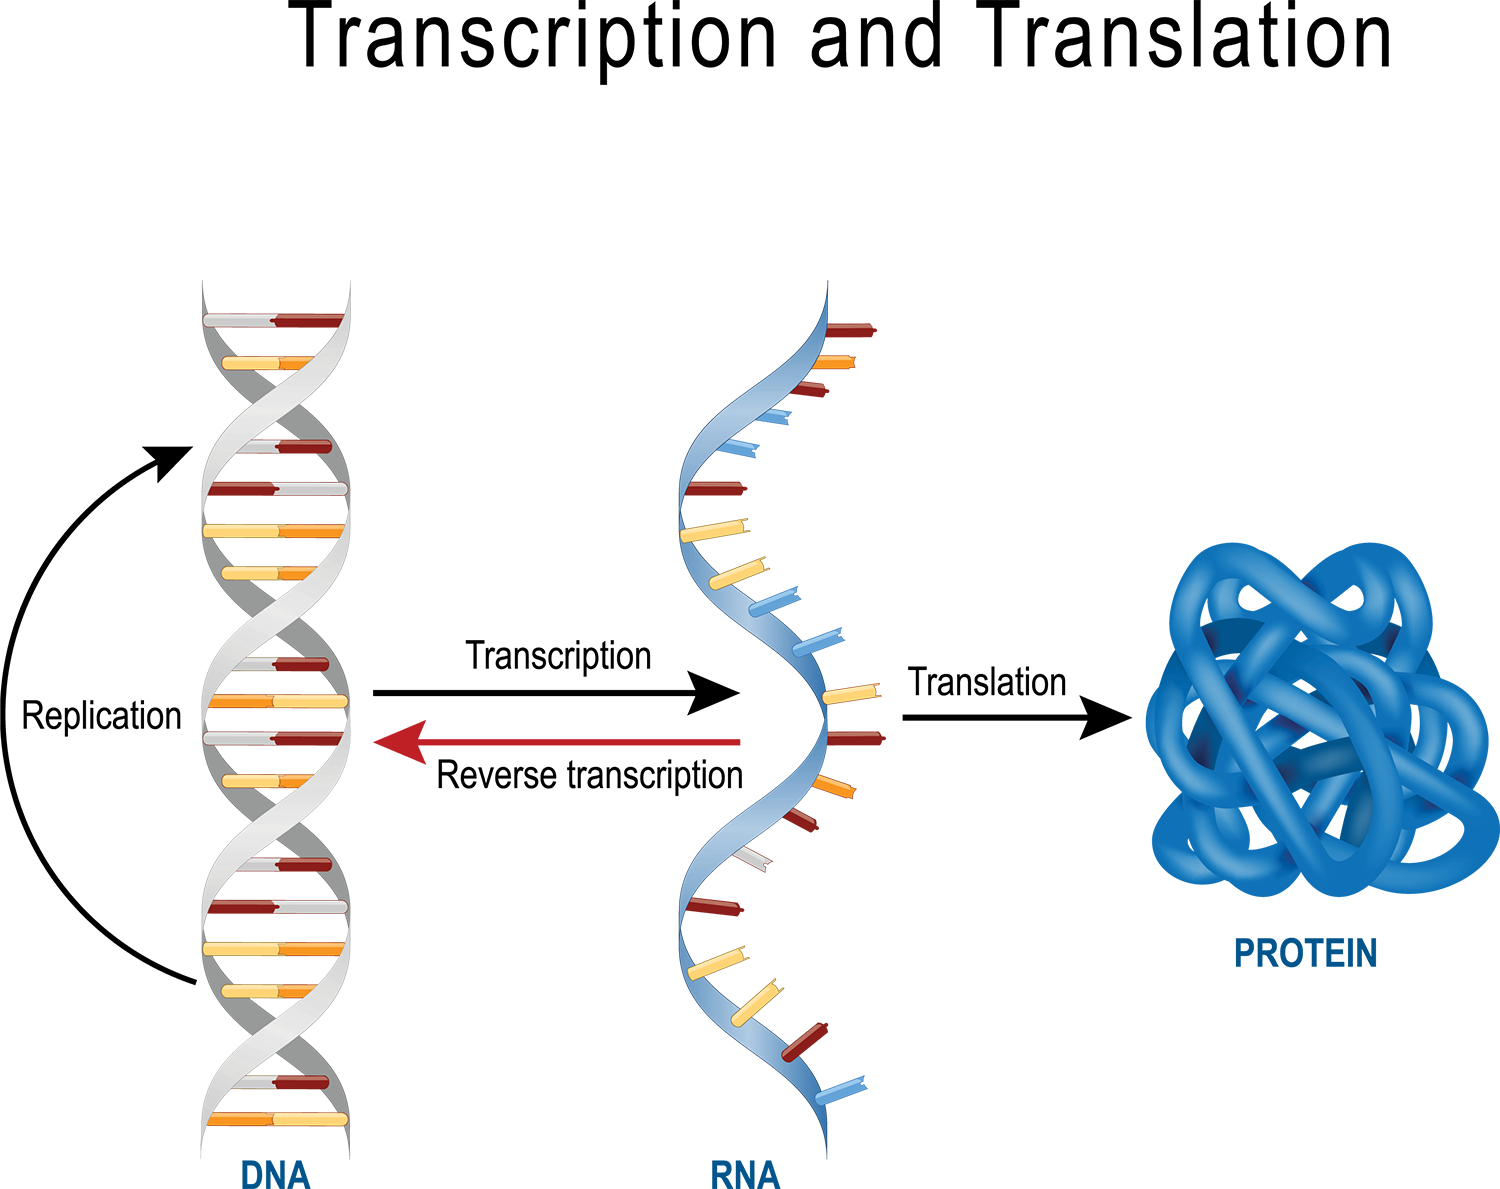 Image of DNA transcription to RNA and then to translation to protein